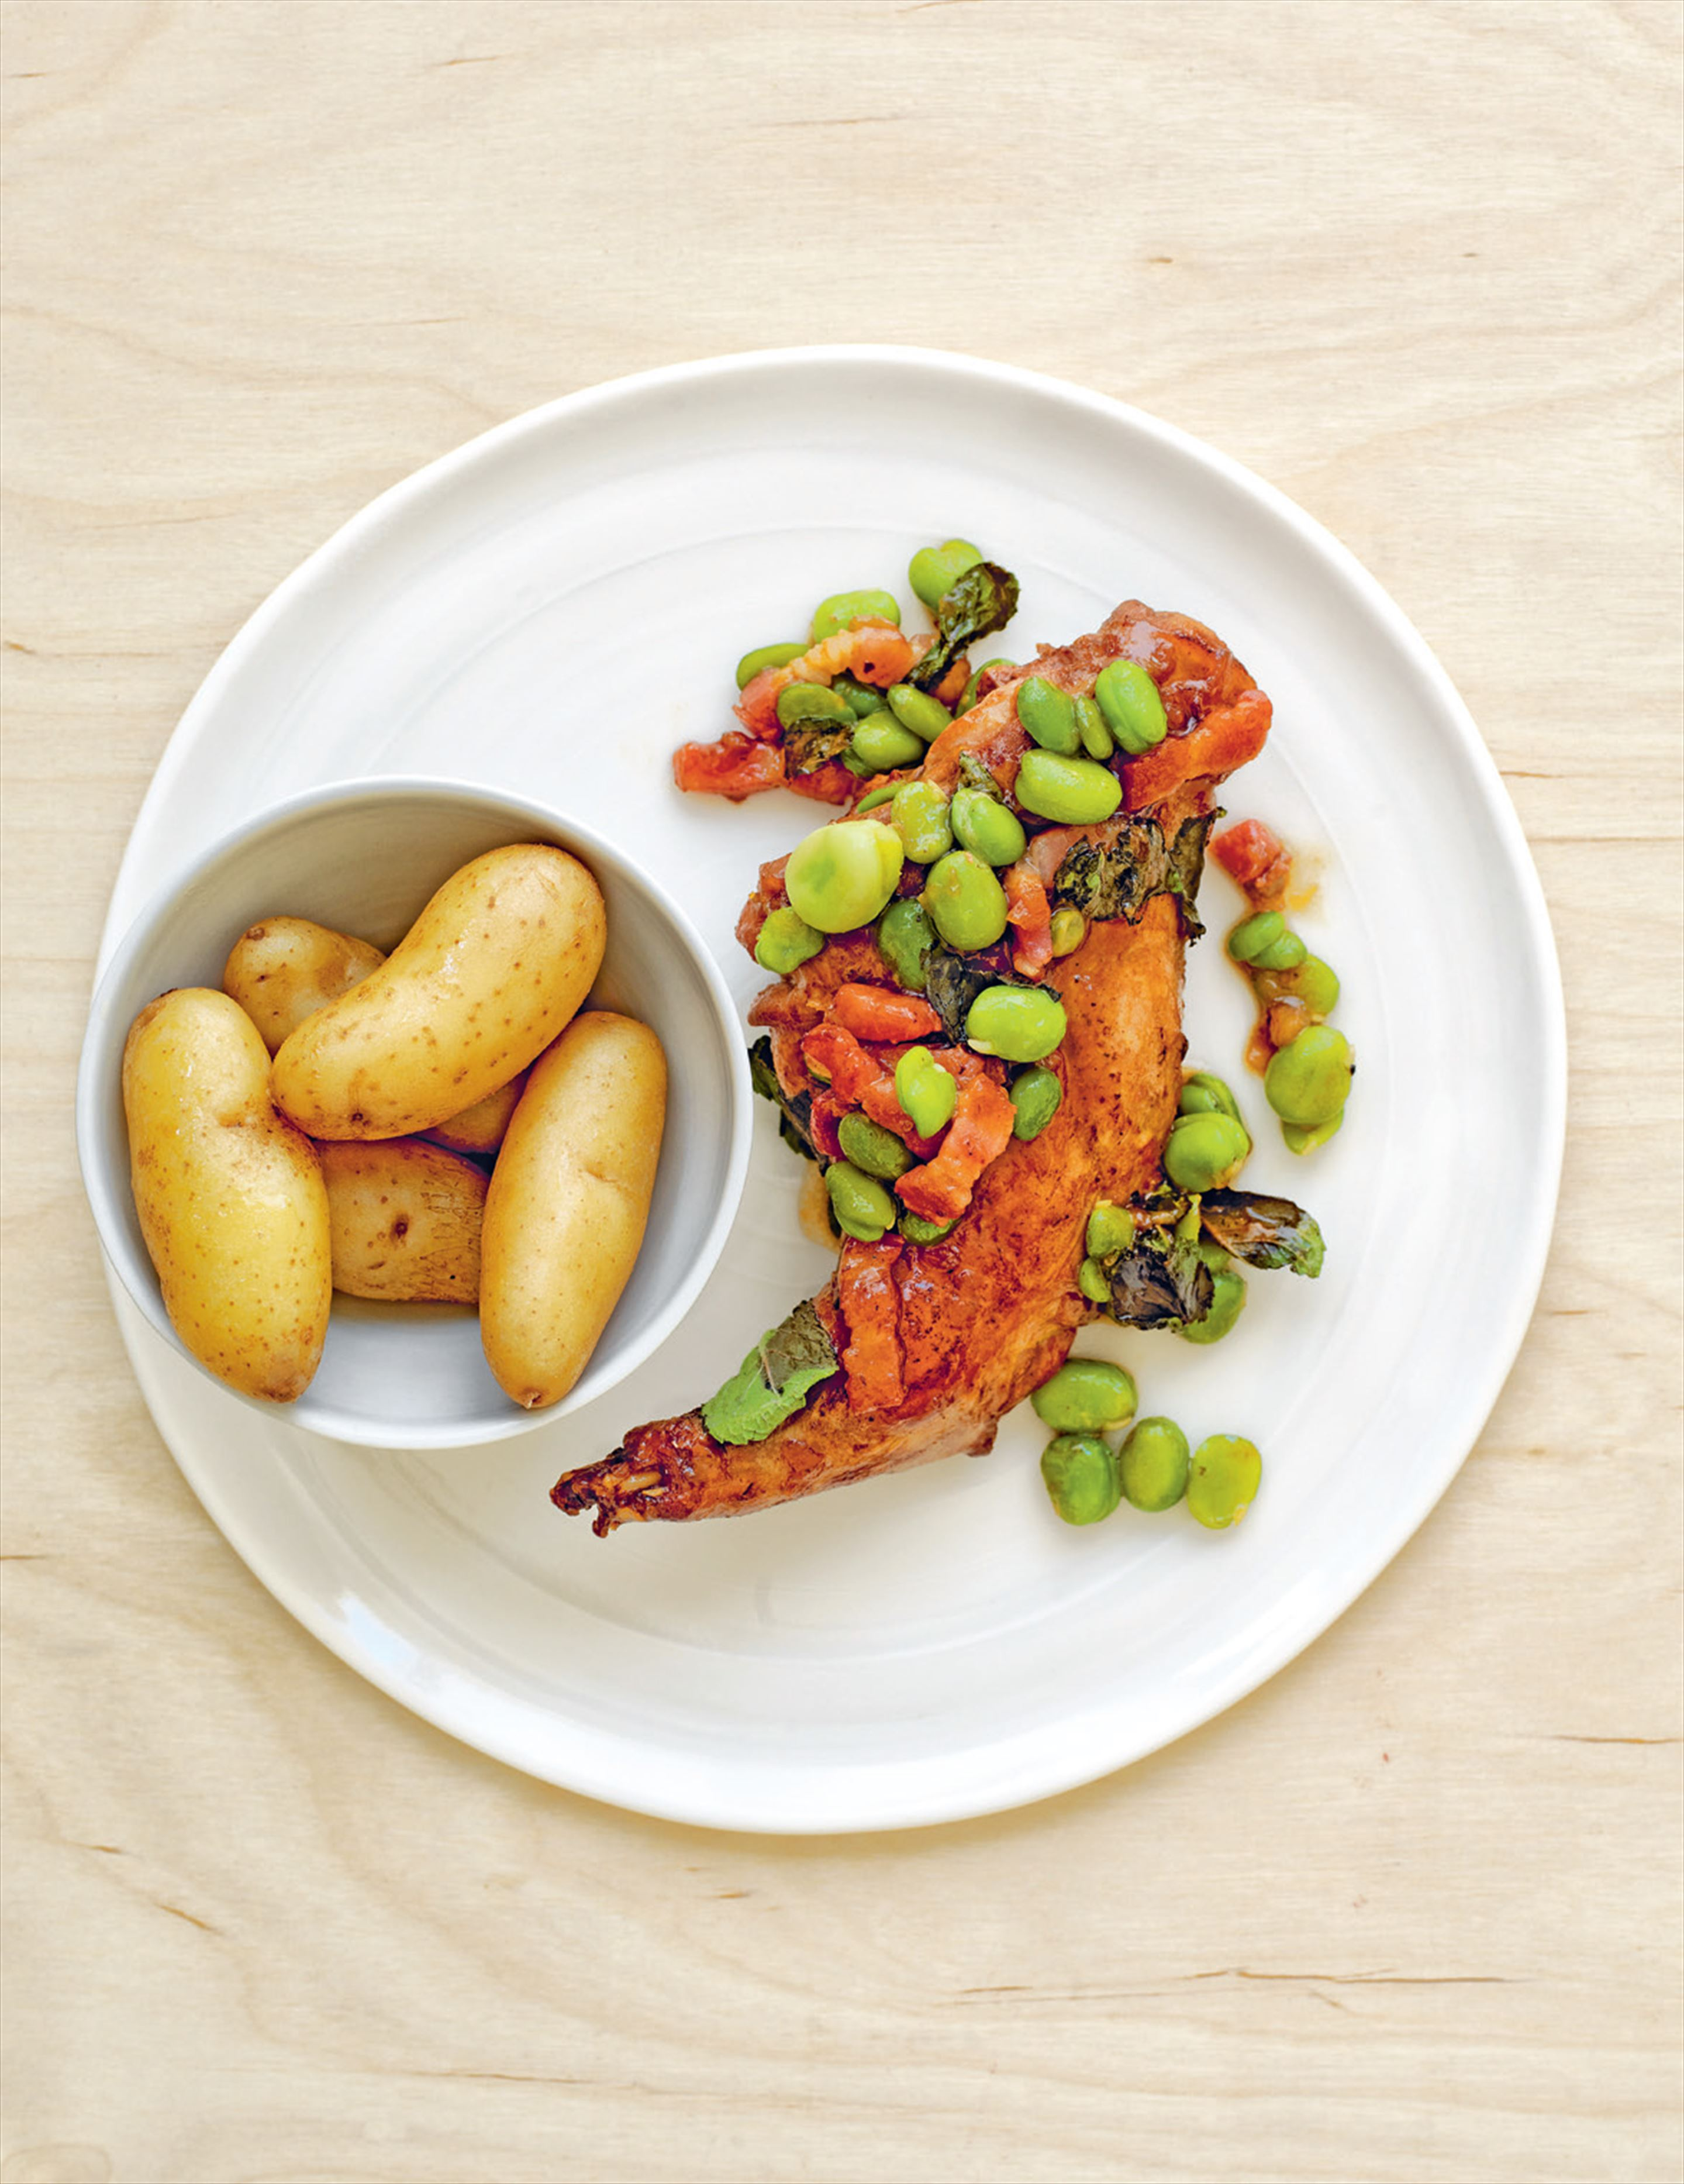 Braised rabbit with broad beans, bacon & mint